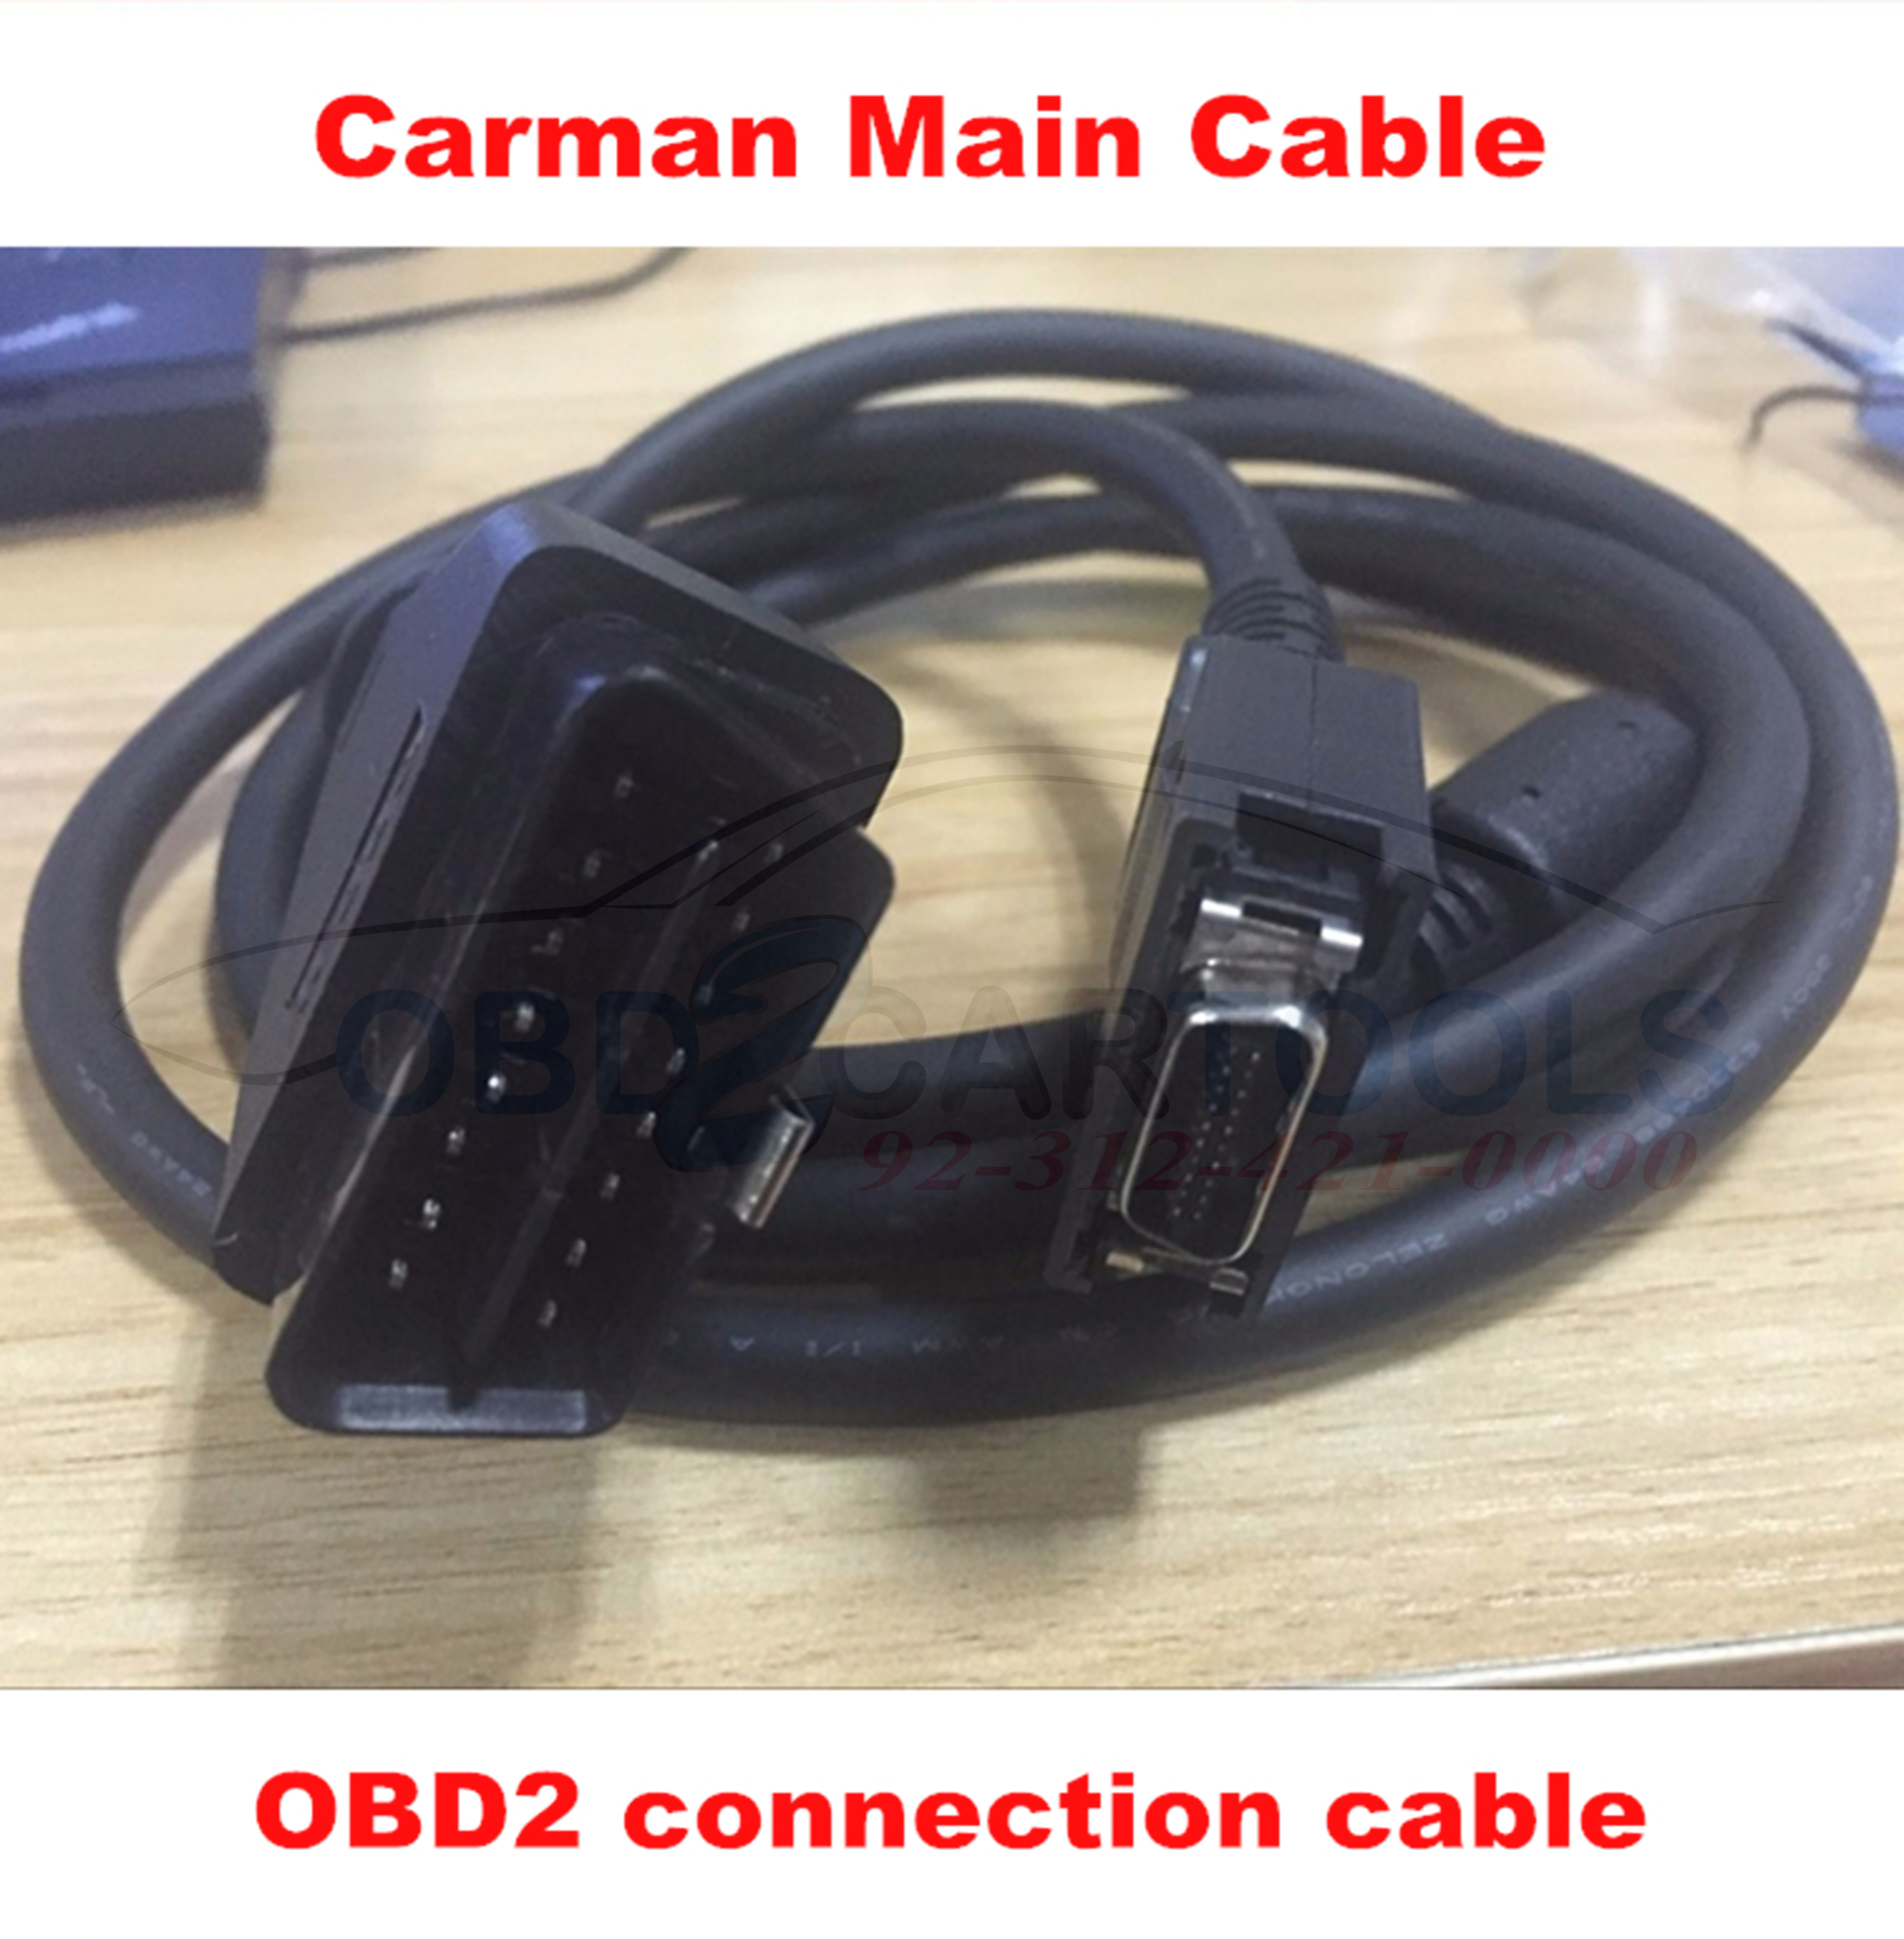 High Quality Carman Scan Lite Main Cable OBD2 cable